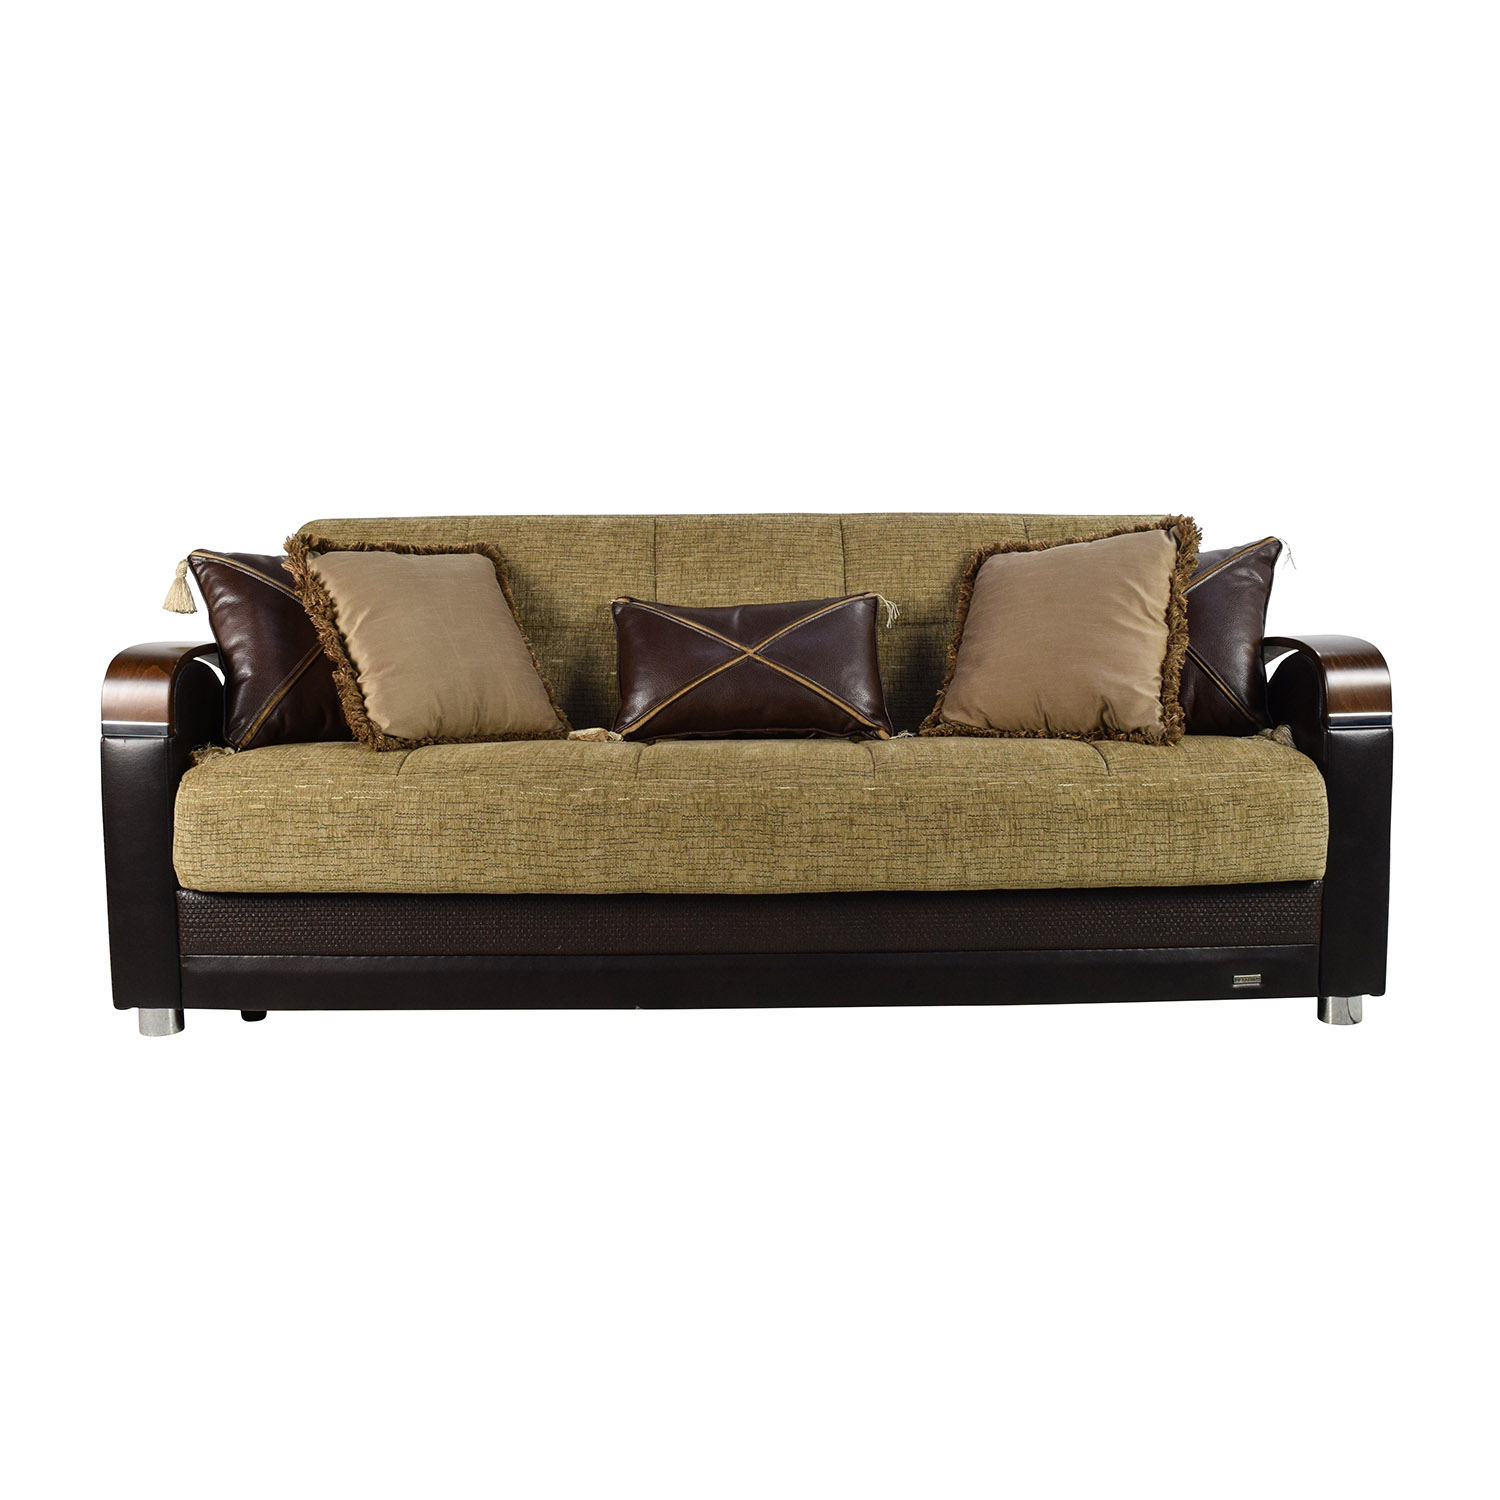 71 Off Bellona Luna Gold And Brown Sofa Sleeper With Pillows Sofas